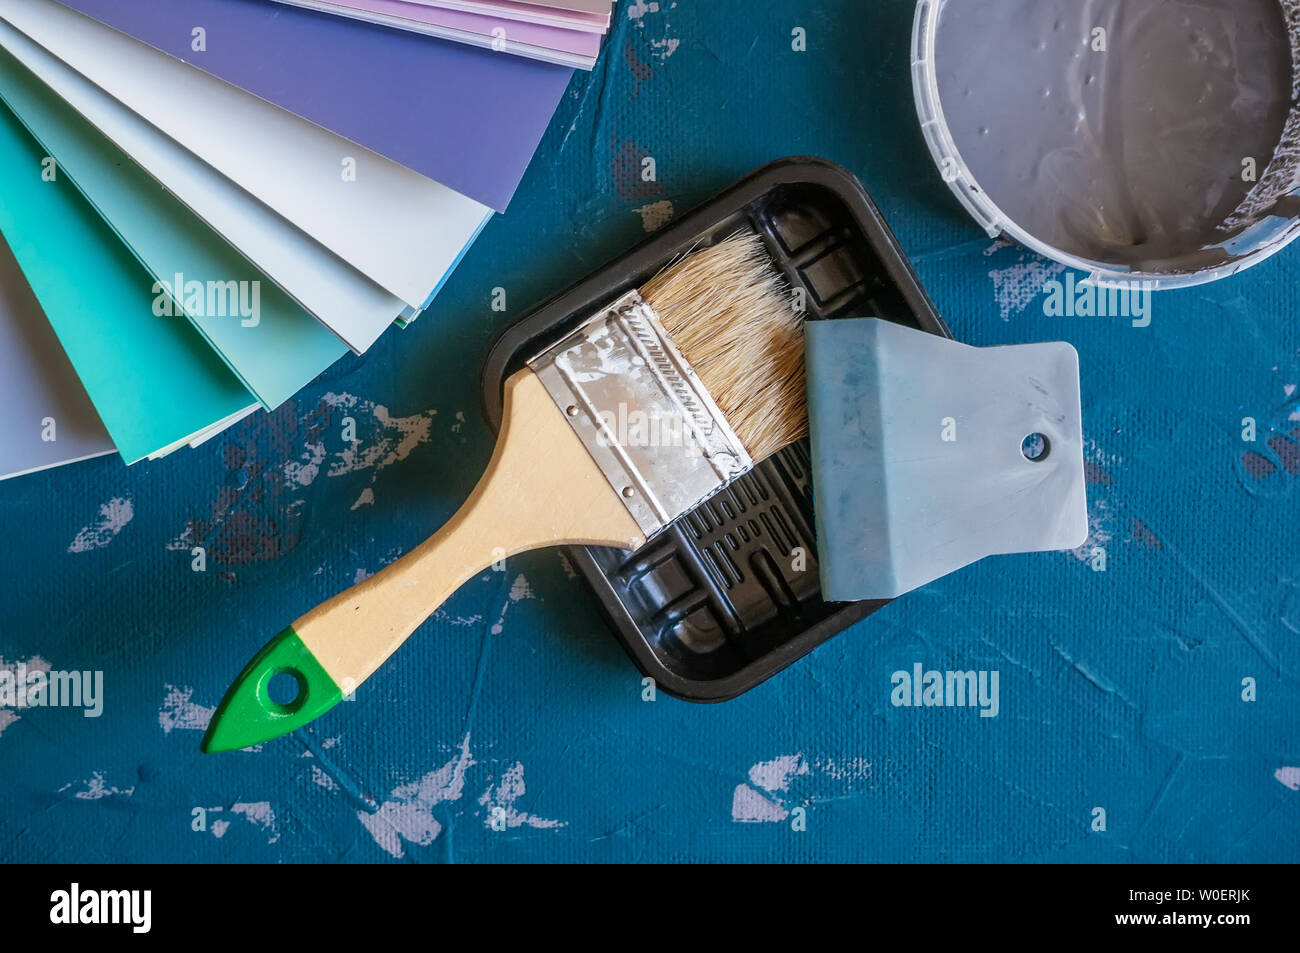 Choose a paint color for the walls. Spatula for painting and wall putty and background in a tray next to a bucket of putty - Stock Image